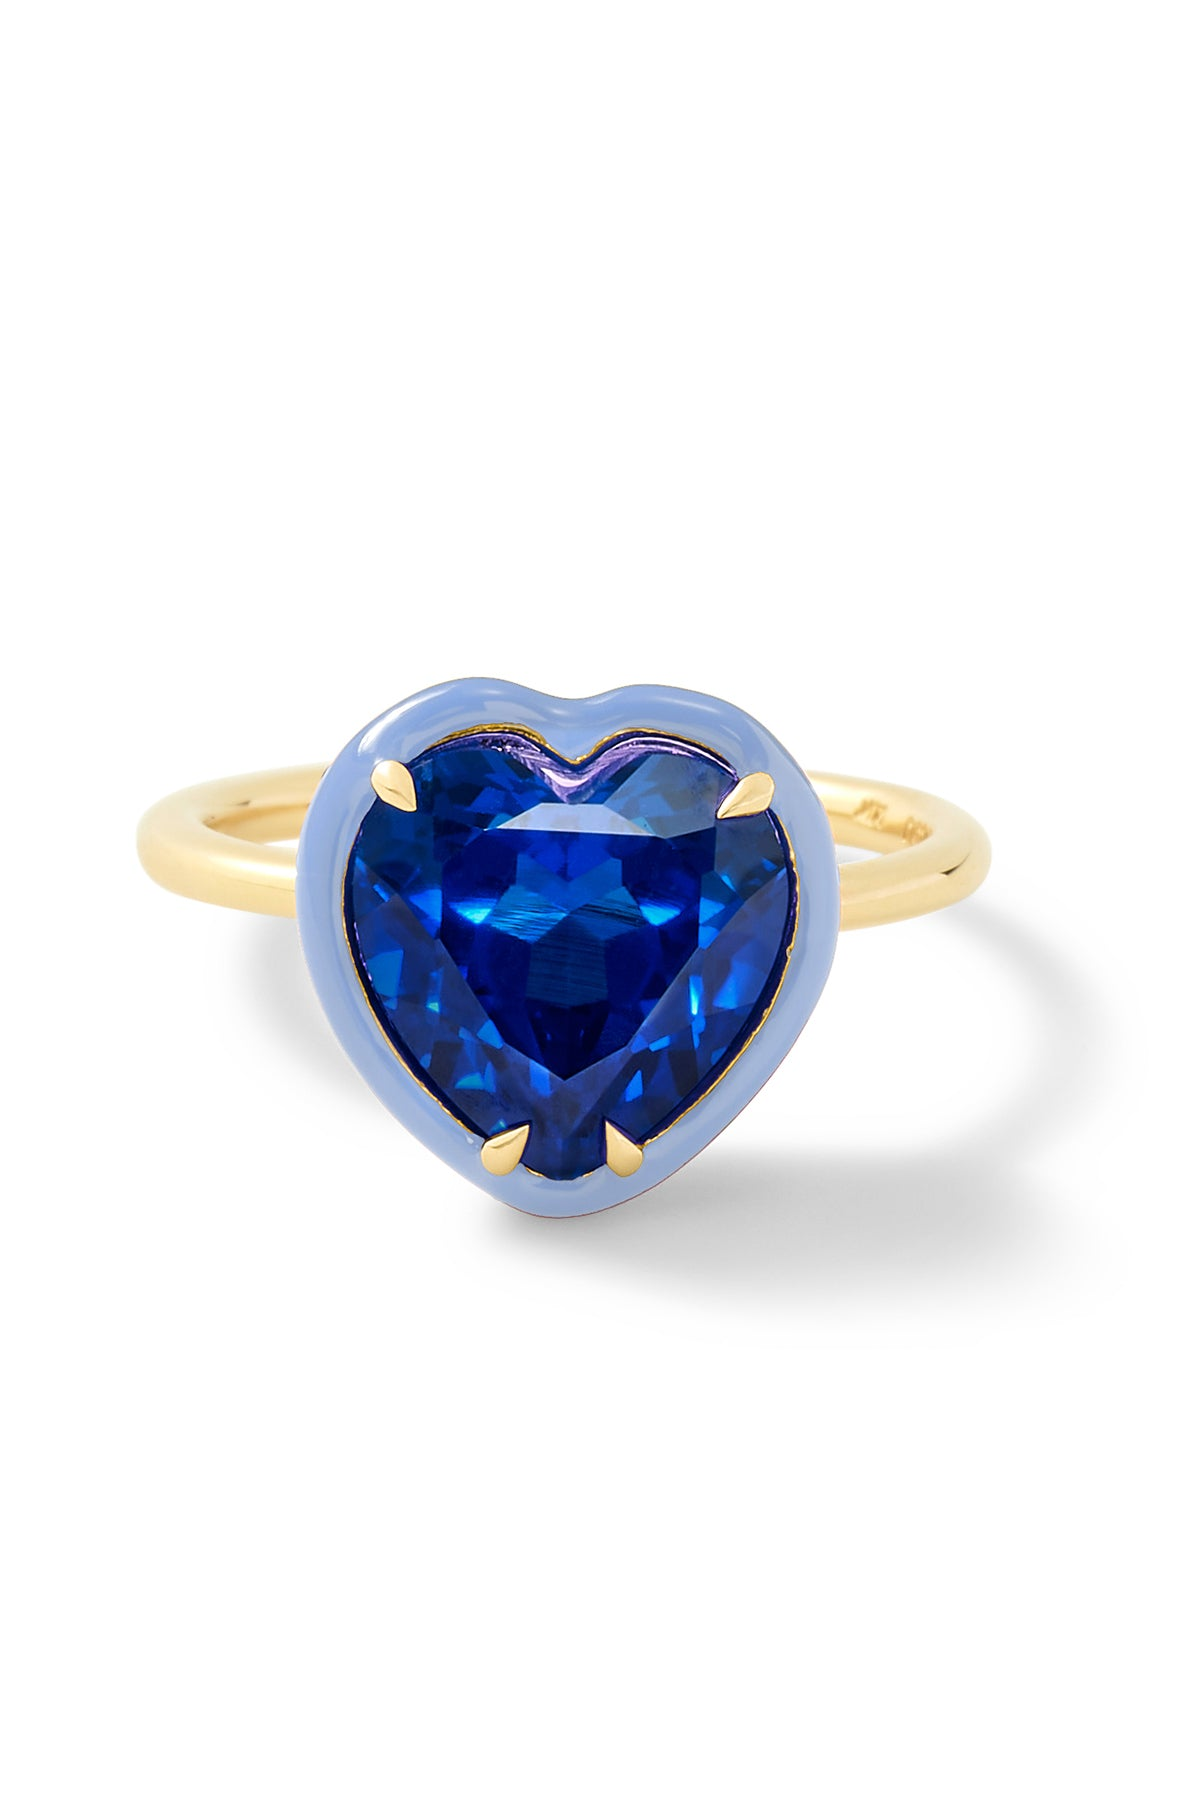 Heart-Shaped Blue Sapphire Cocktail Ring - In Stock